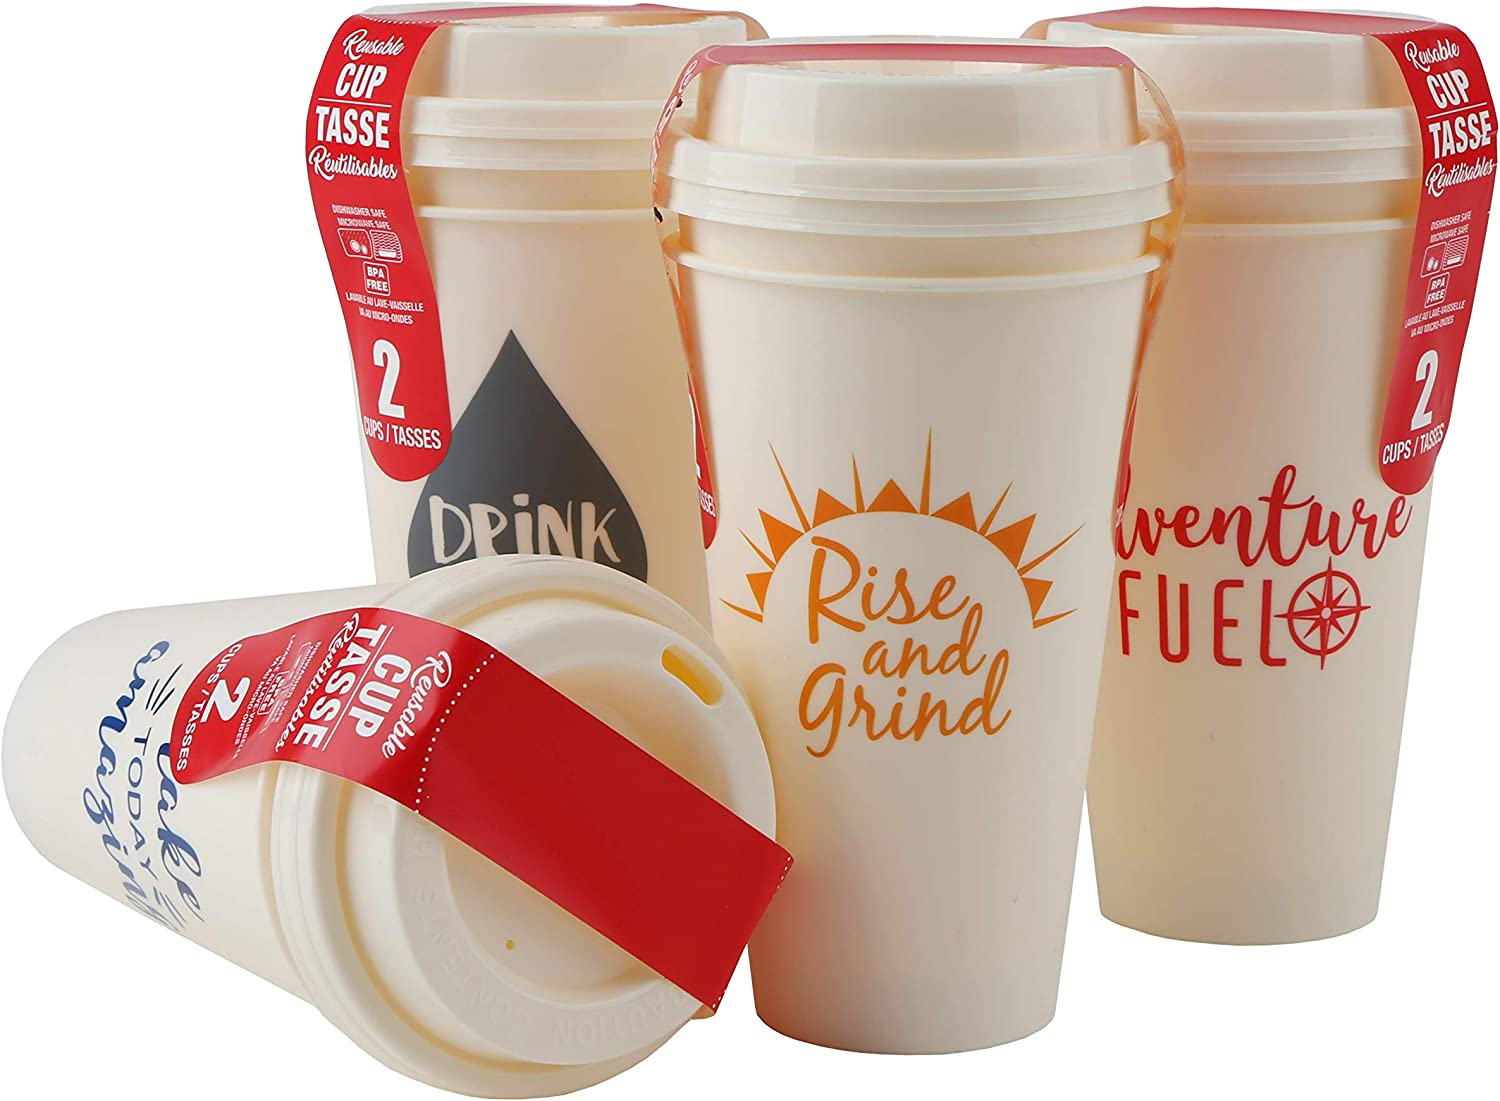 Take It To Go with Lids Reusable Plastic Travel Cups 16 ounce- 8PCS